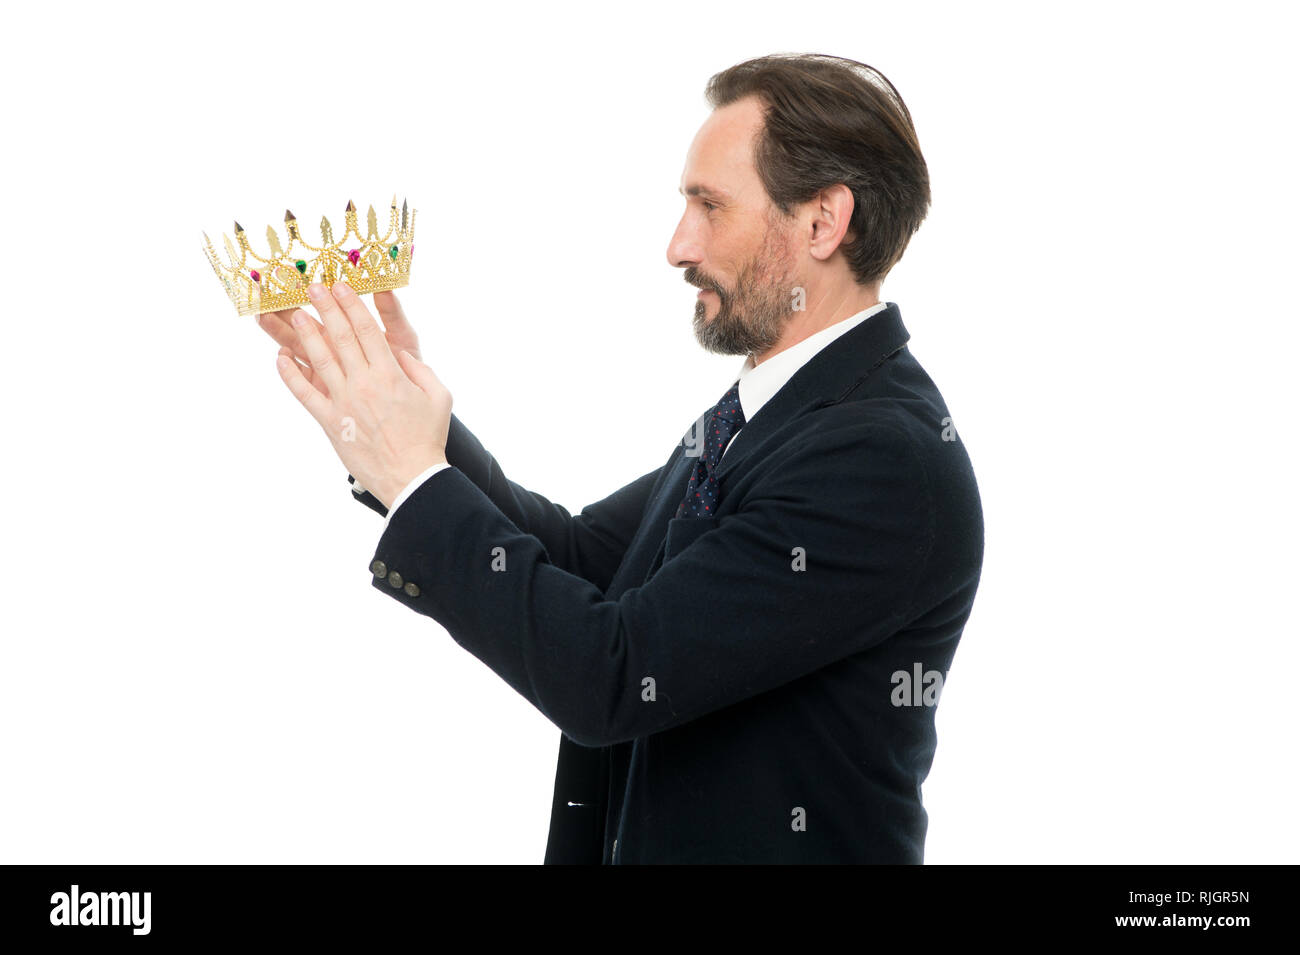 King attribute. Become next king. Monarchy family traditions. Man nature bearded guy in suit hold golden crown symbol of monarchy. Direct line to throne. Enormous privilege. Become king ceremony. - Stock Image